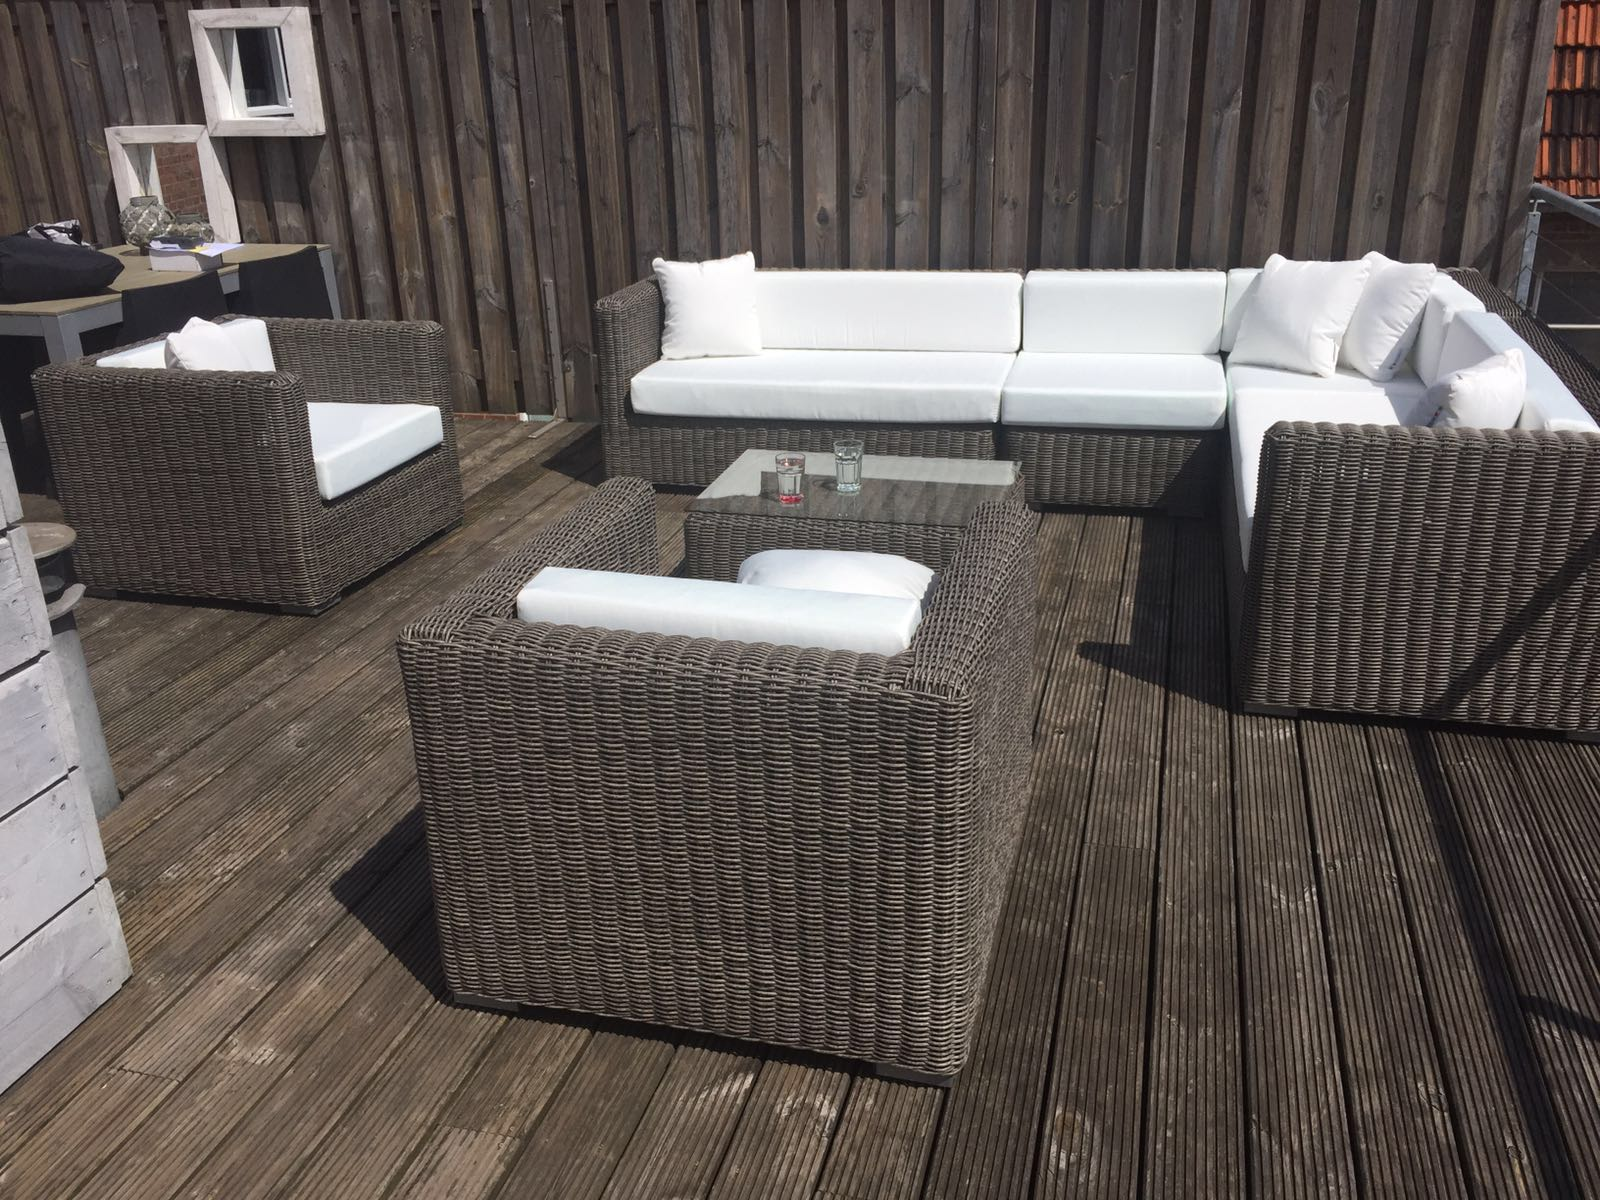 Wicker loungeset